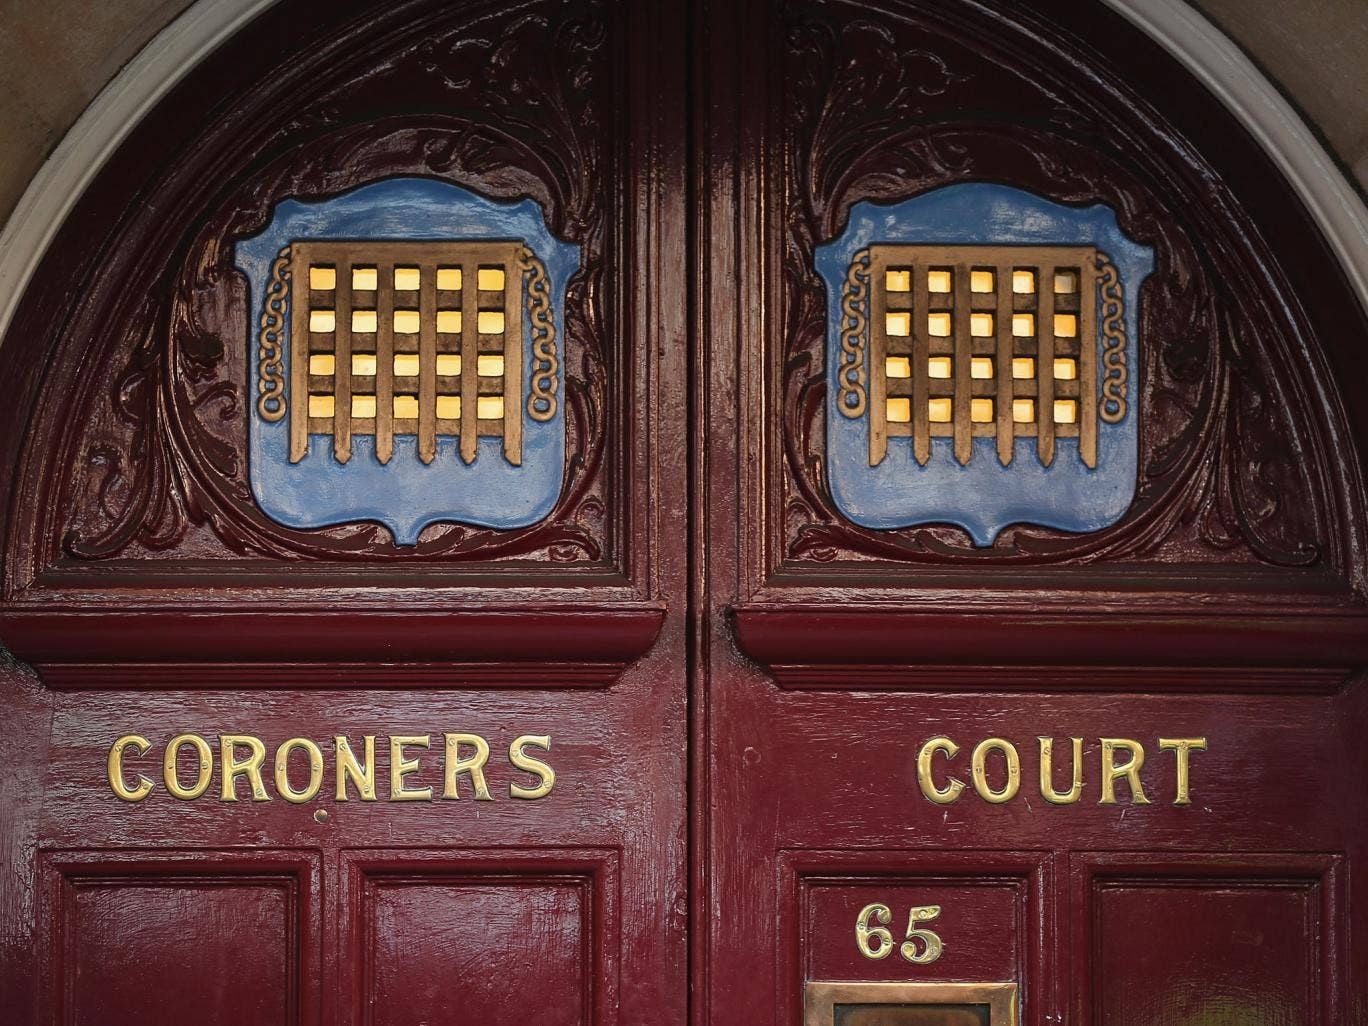 The system of inquests in England and Wales is set for major overhaul after new laws came into force last week